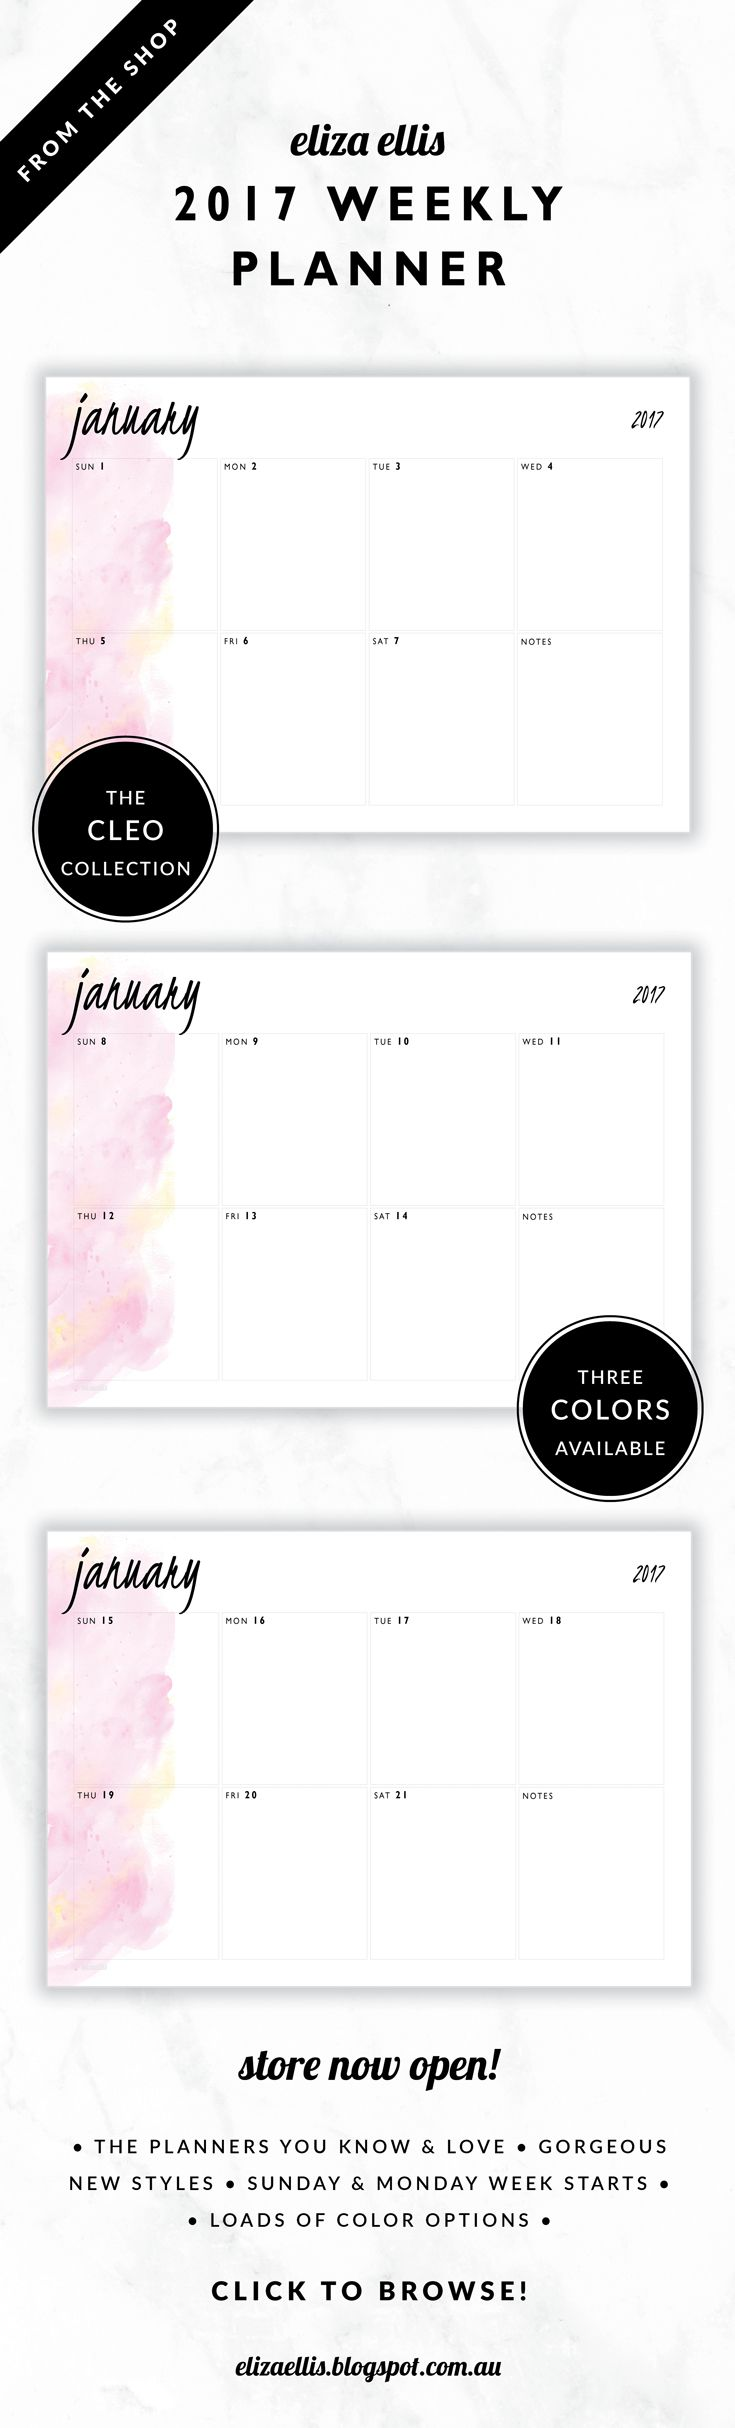 2017 Weekly Planner // The Cleo Collection by Eliza Ellis. Gorgeous watercolor and handwritten type design. Available in 3 colors – fairyfloss, nimbus and sherbet. Monday and Sunday week starts included. Documents print to A4 or A5.